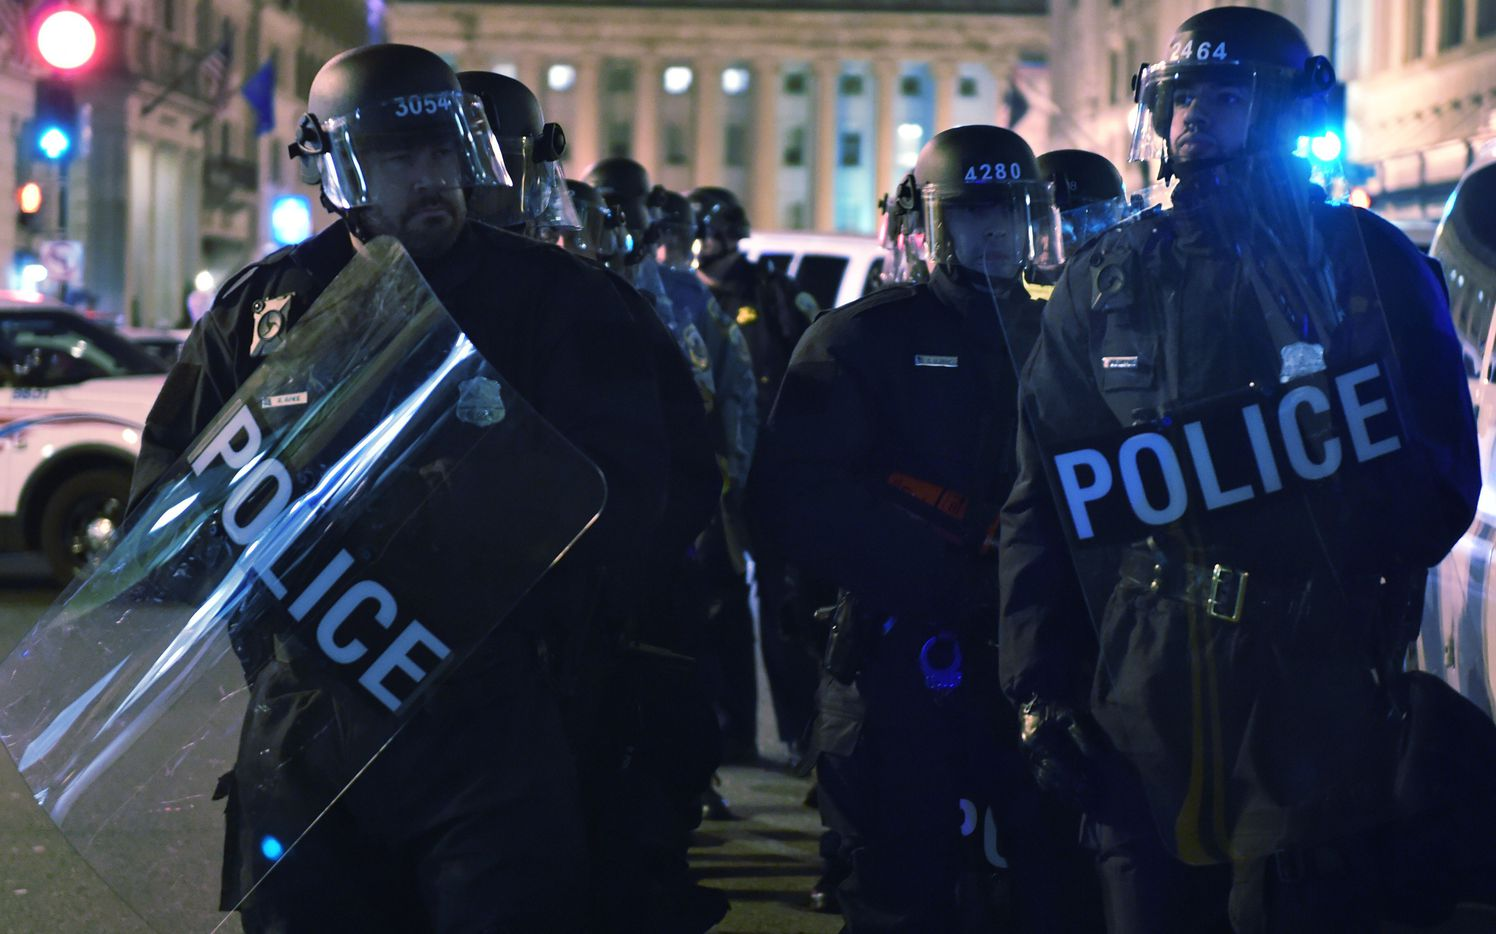 Police look on as activists rally during a Deplorable ball protest in a street outside press club in Washington, DC on January 19, 2017.